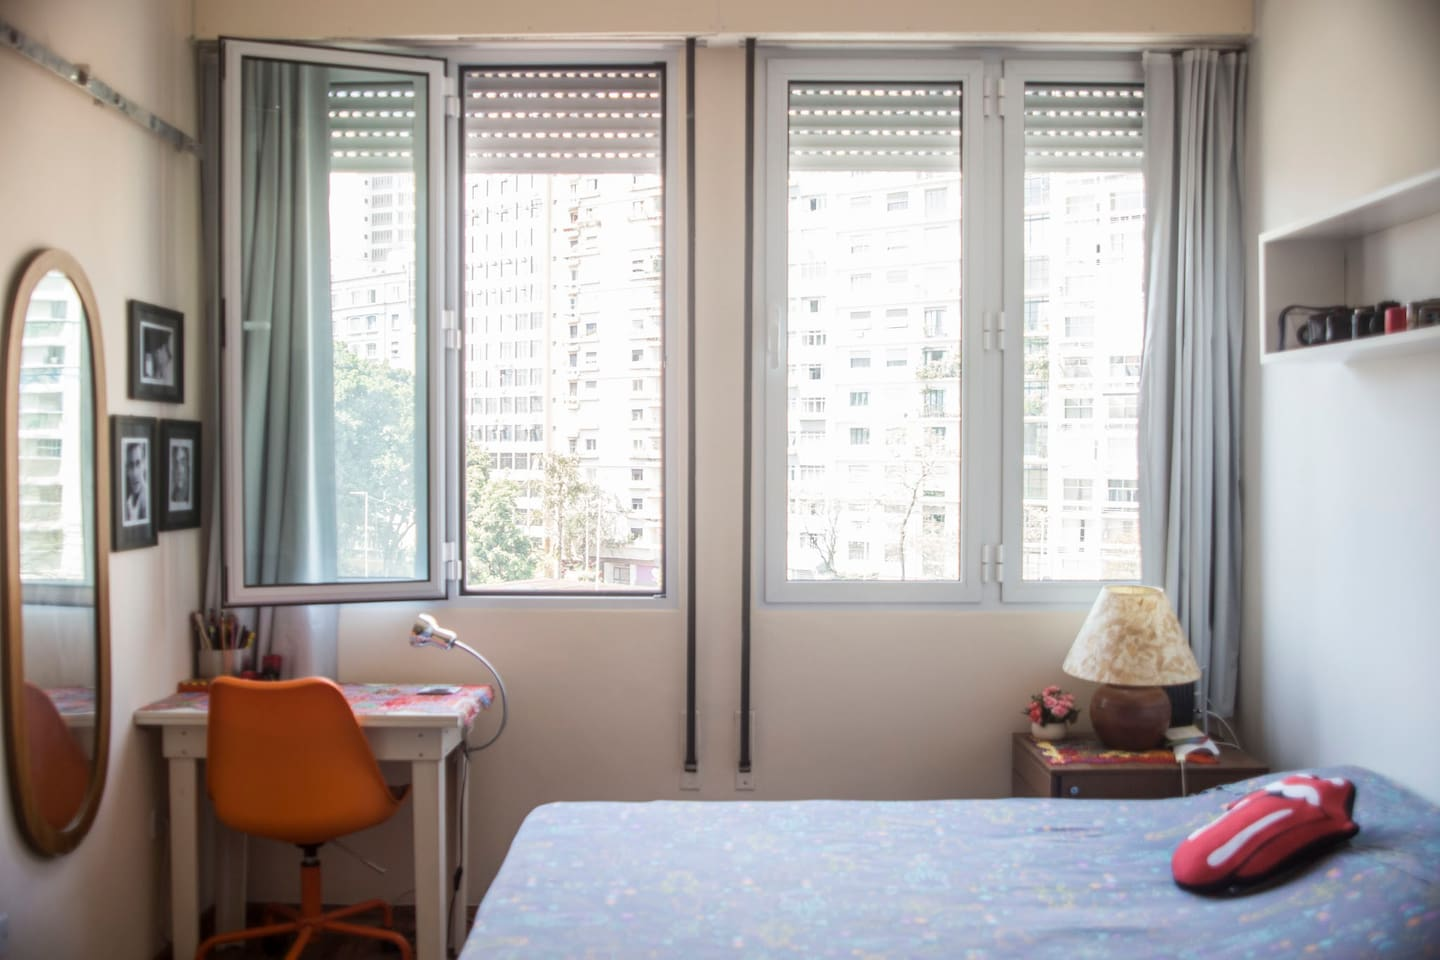 New soundproof windows and blackout curtains